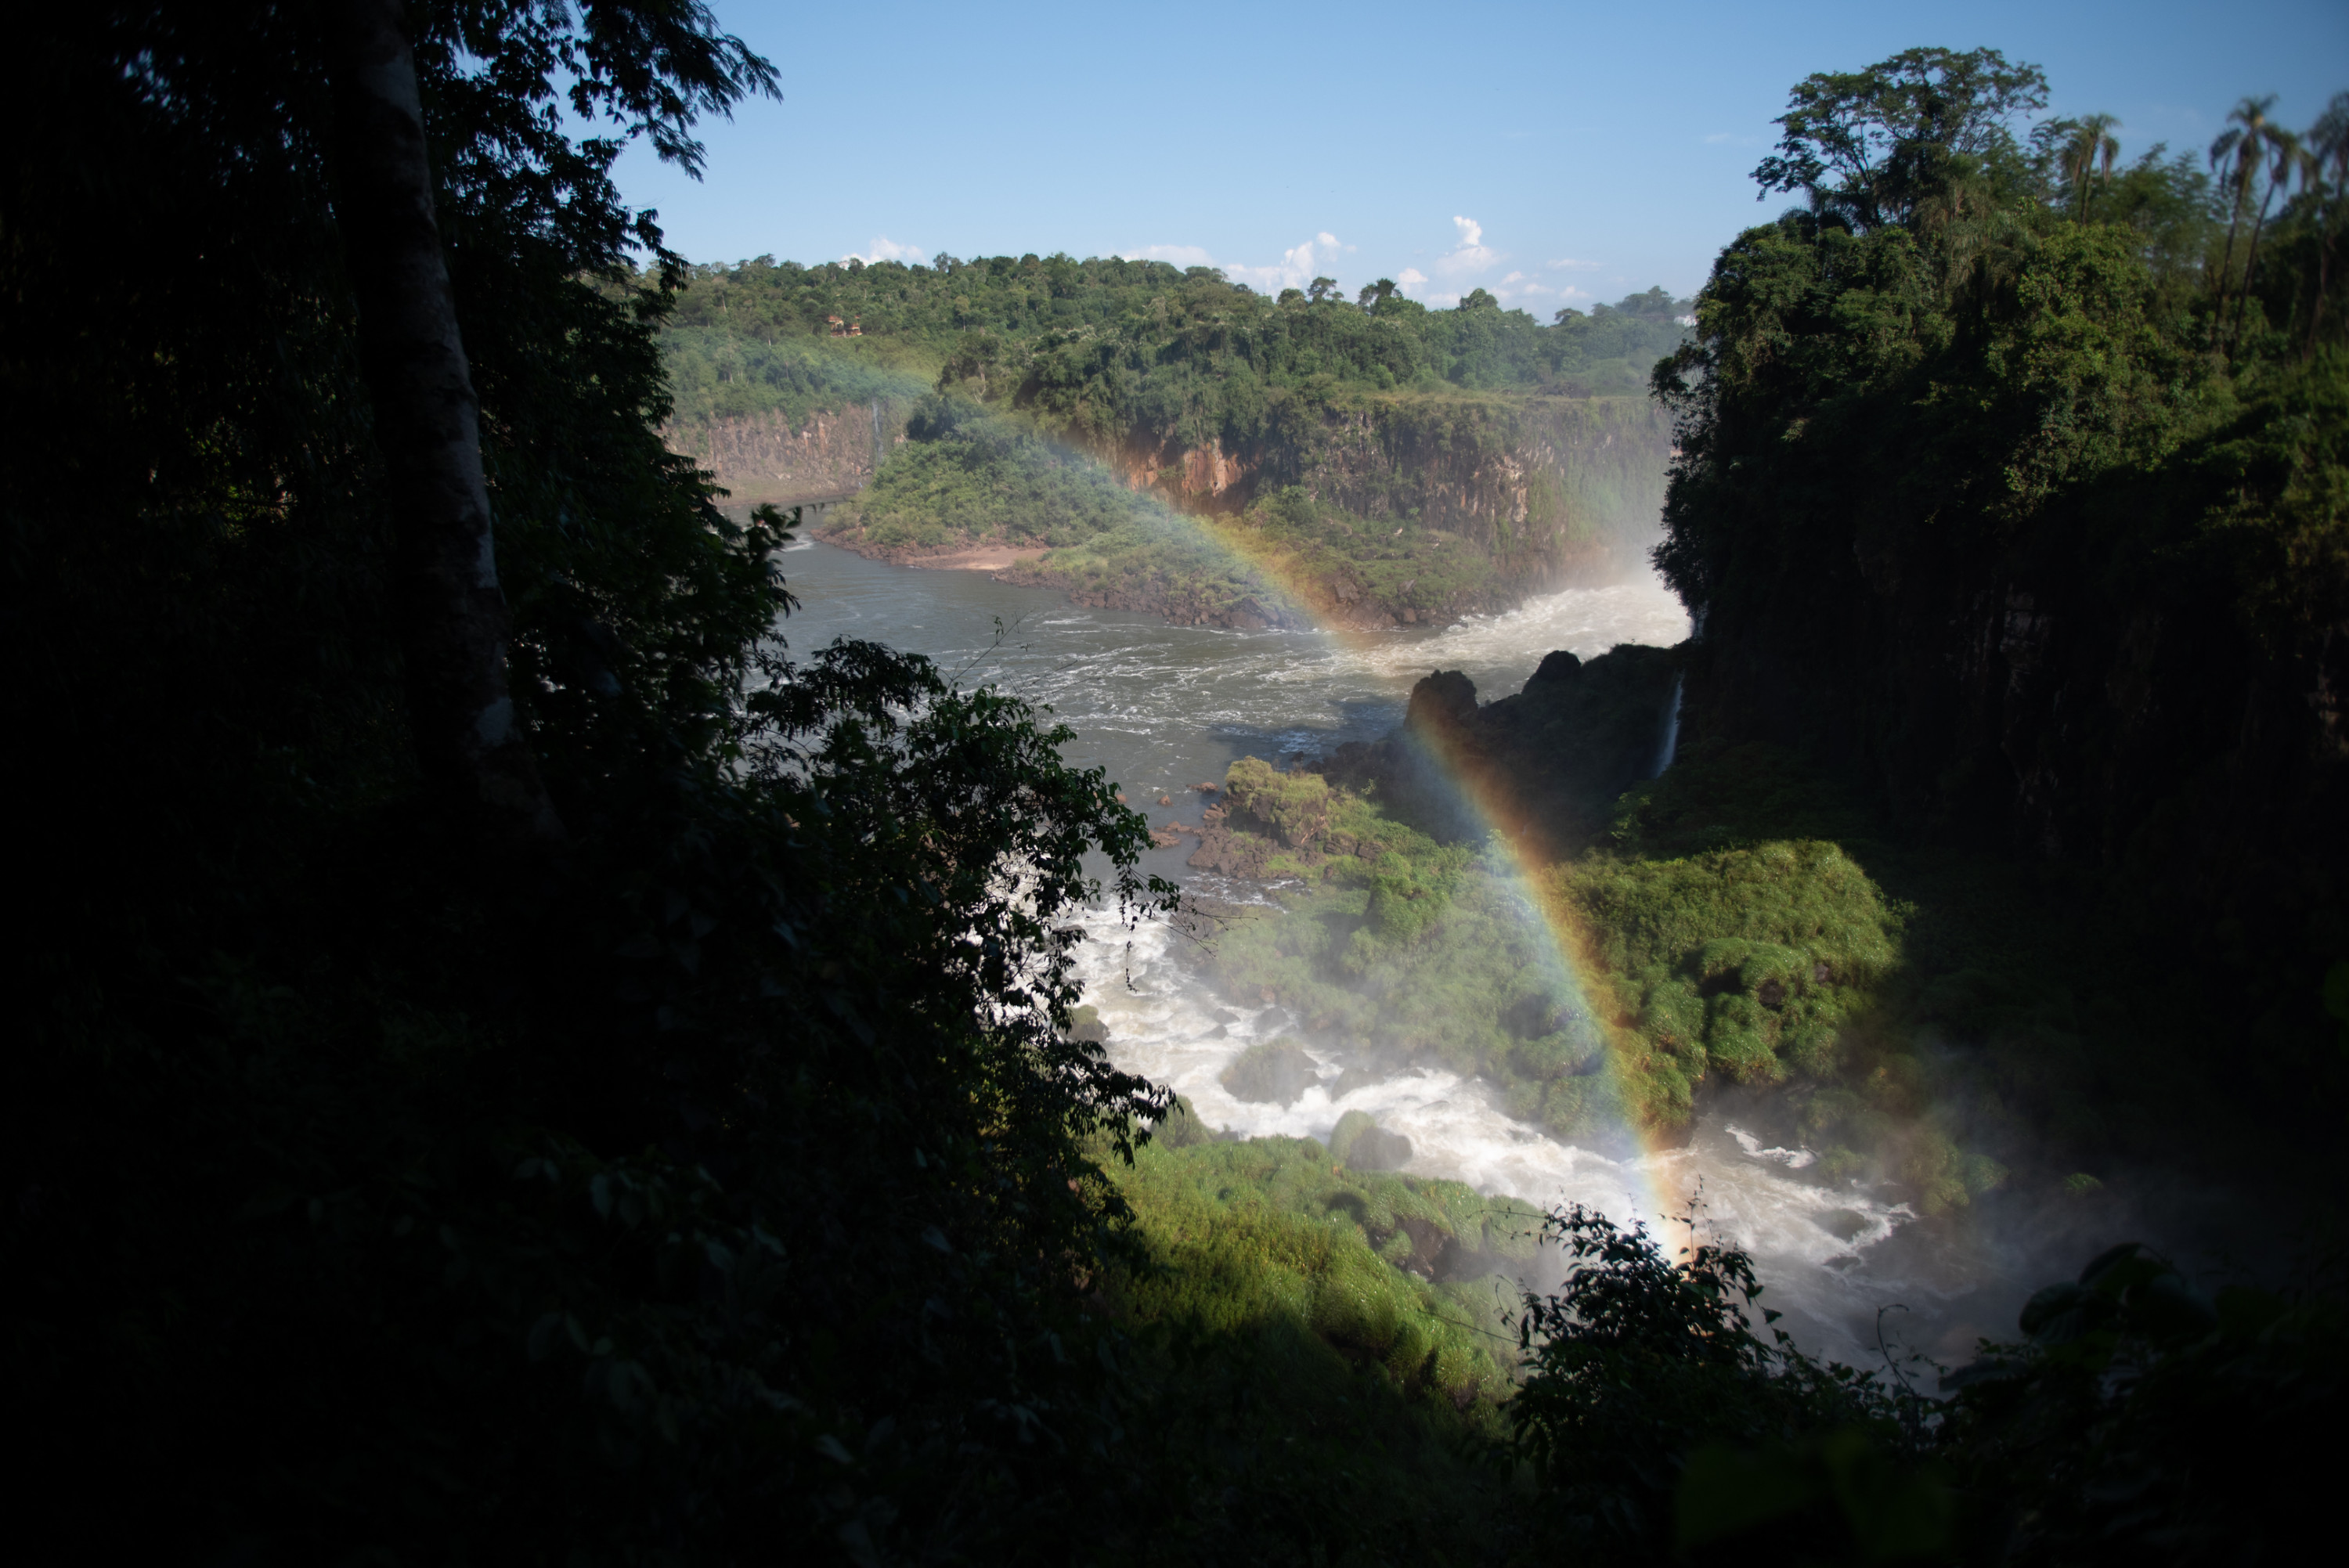 A rainbow stretches across the mist of waterfalls in Iguazú National Park.